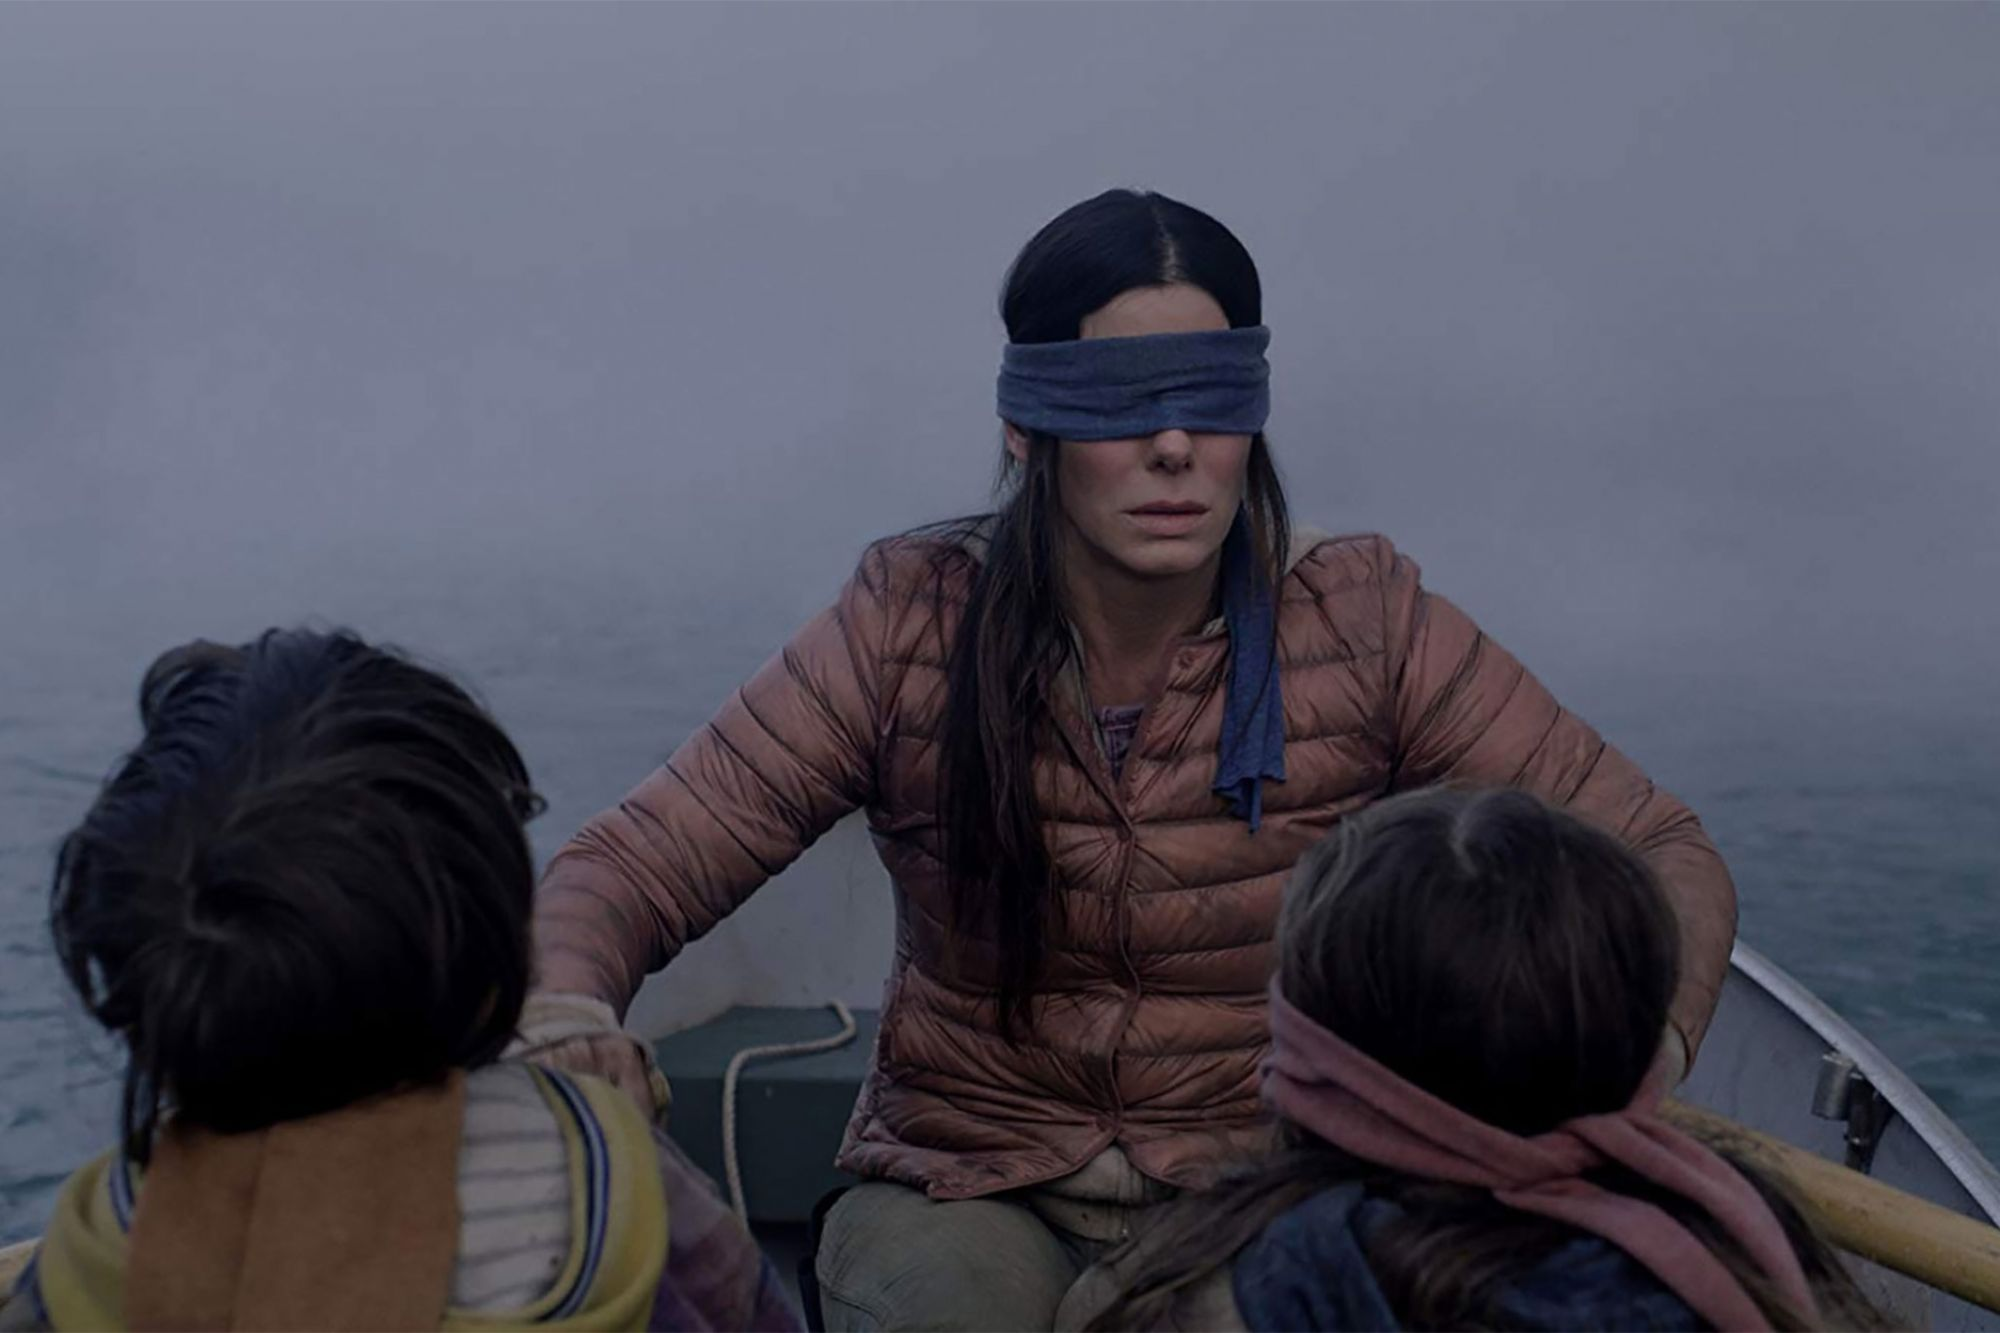 'Bird Box': Breaking Barriers in the Streaming World by Marketing Through Memes